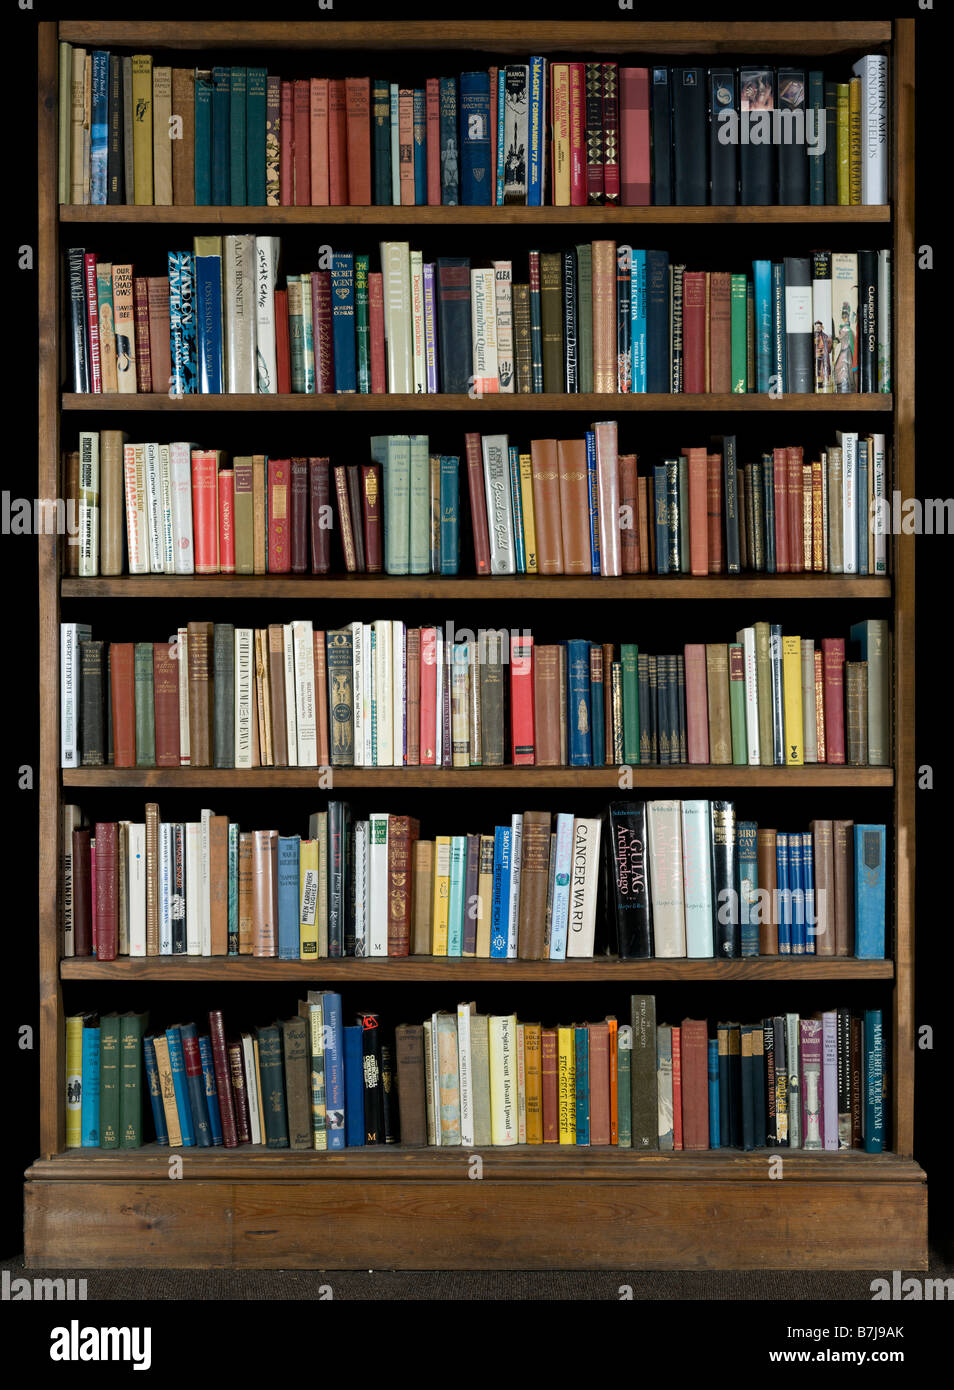 High Resolution Image Of Books On A Bookshelf On A Black Background - Stock Image